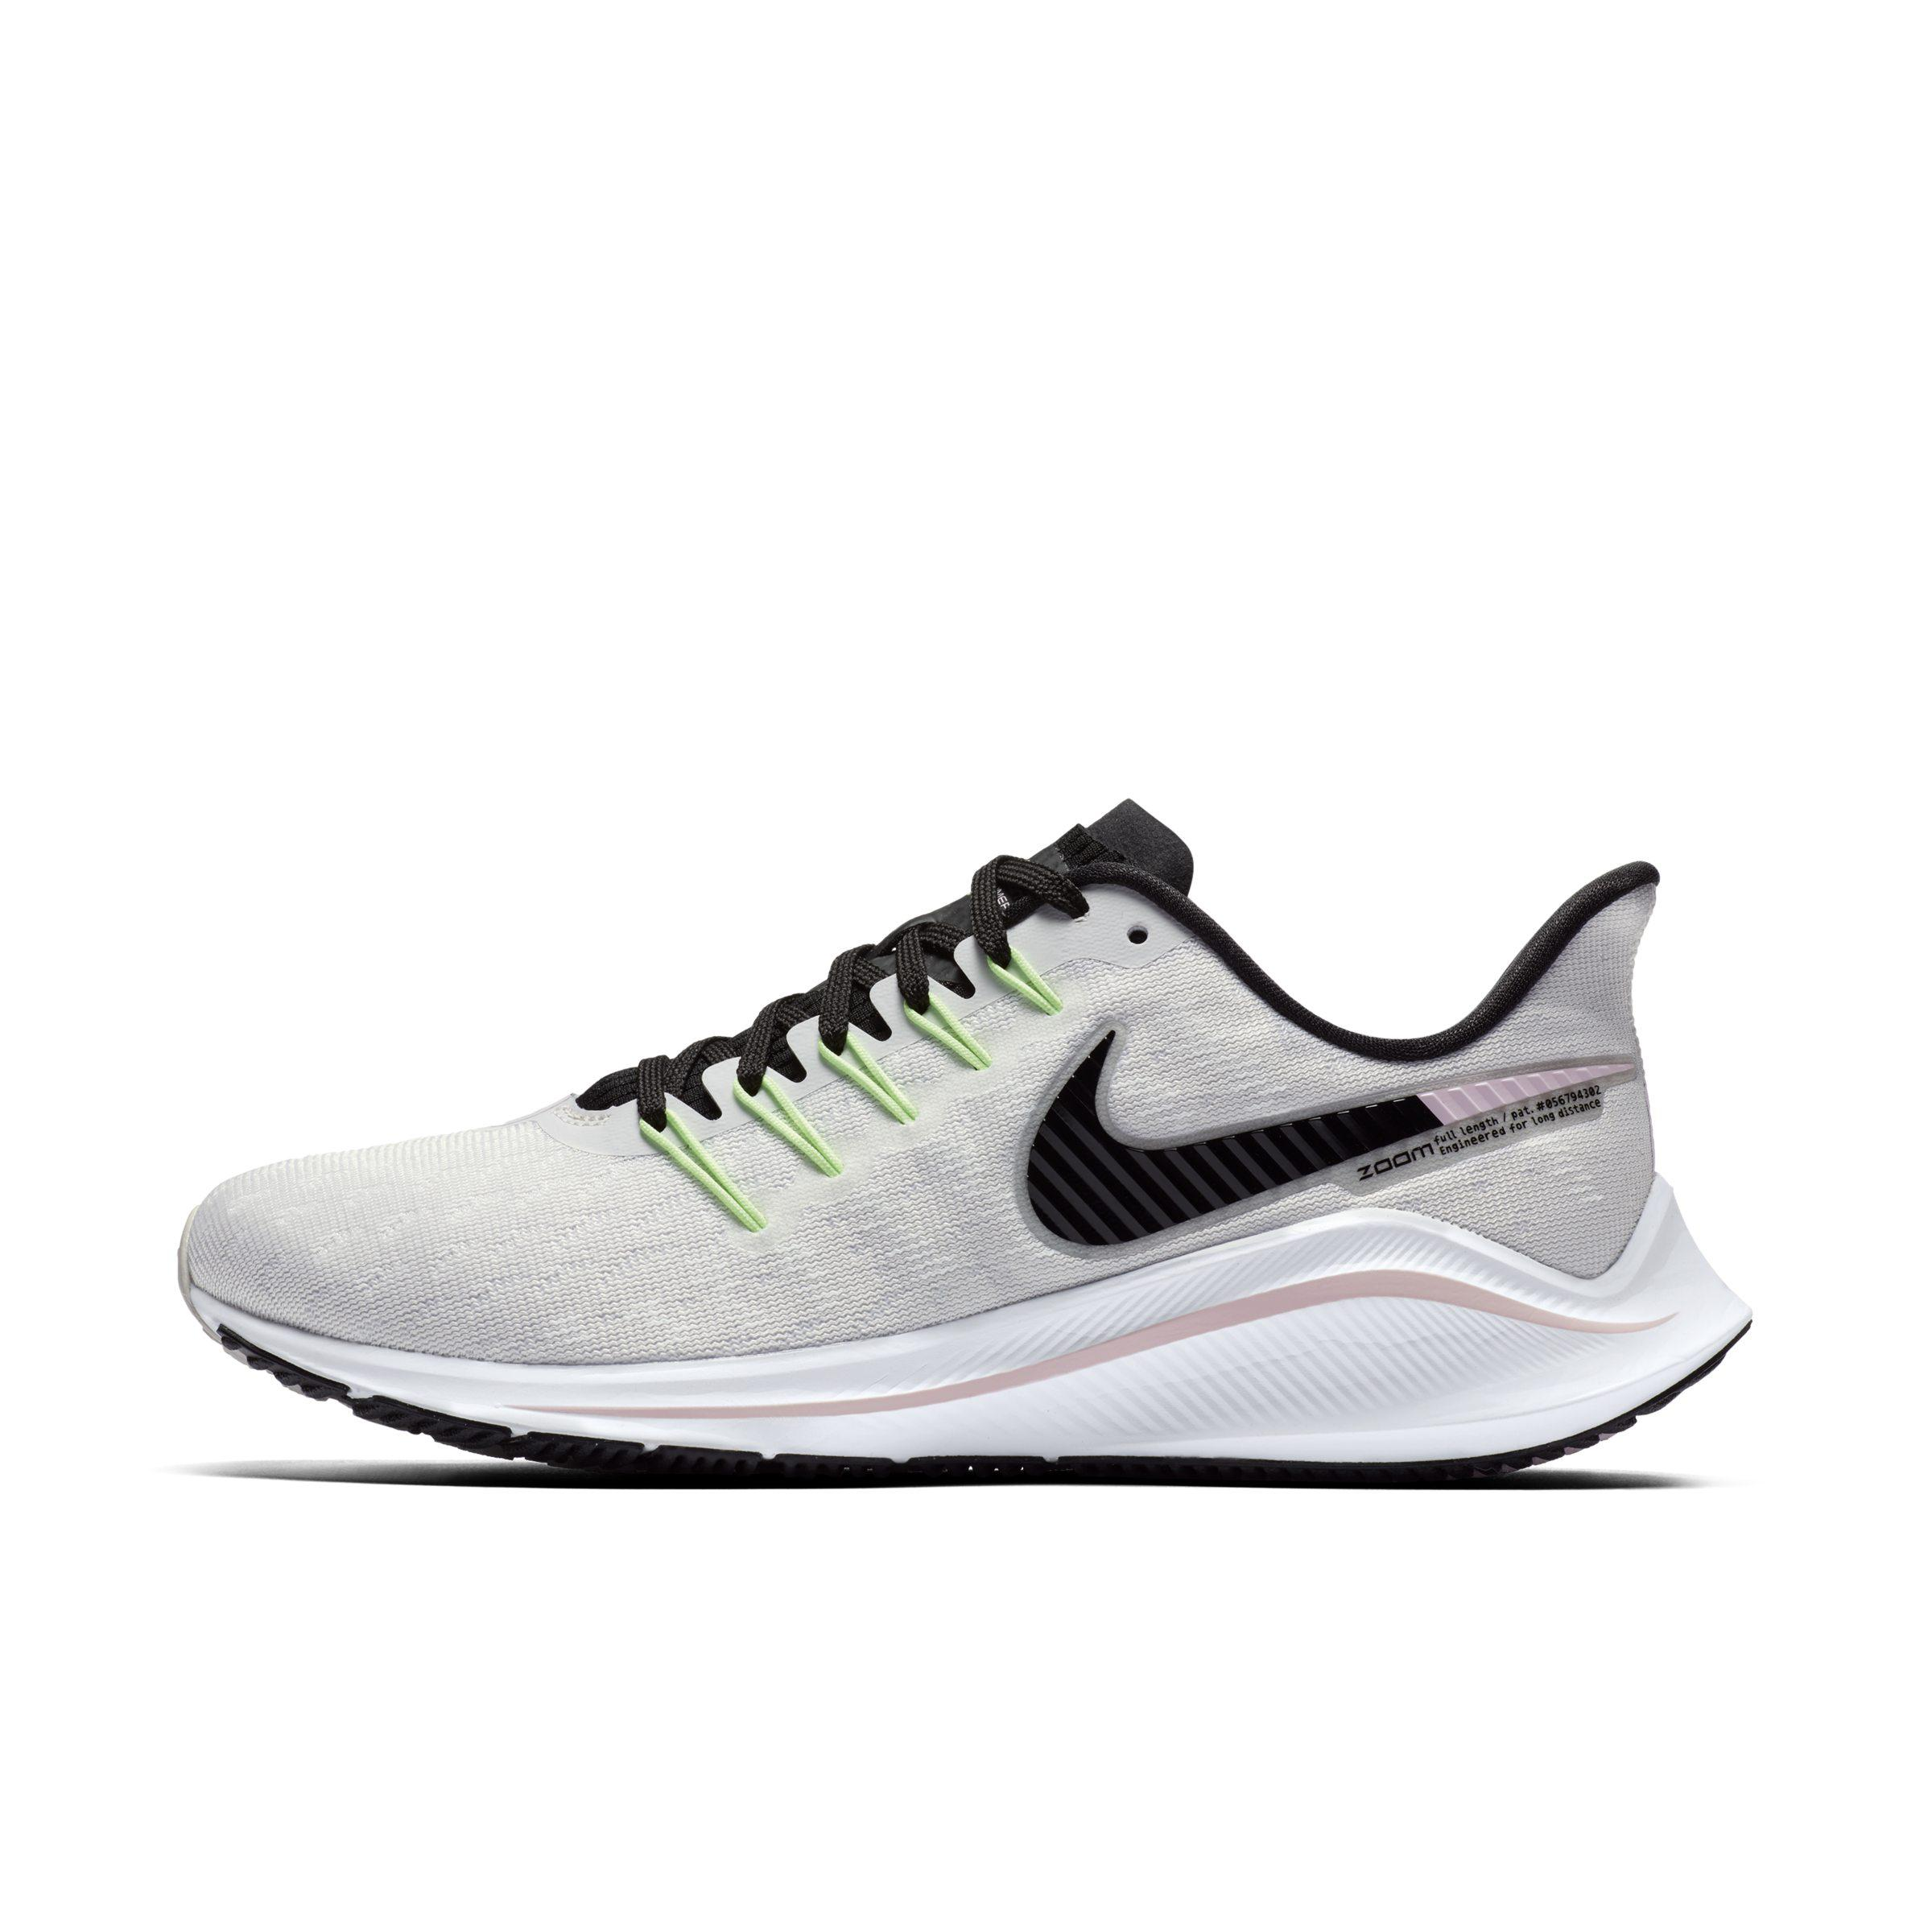 purchase cheap 6a91d af7c2 Nike. Air Zoom Vomero 14 Zapatillas de running ...